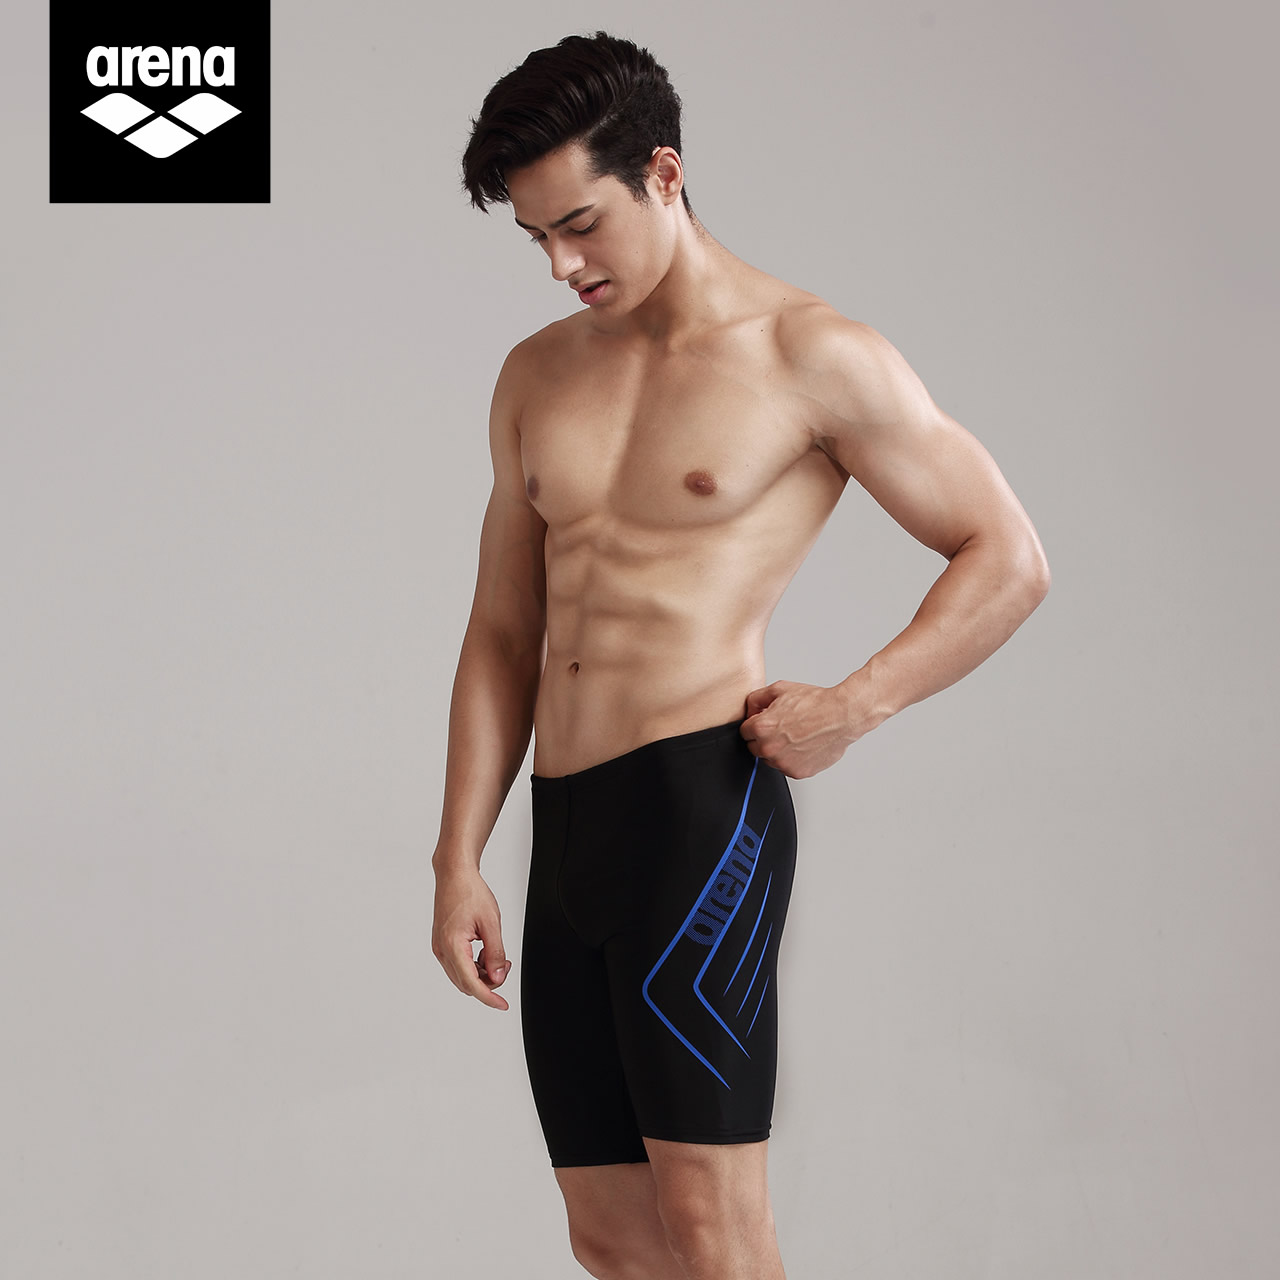 8a894158d4 USD 81.35] arena Ariane swimming trunks men's anti-embarrassing ...